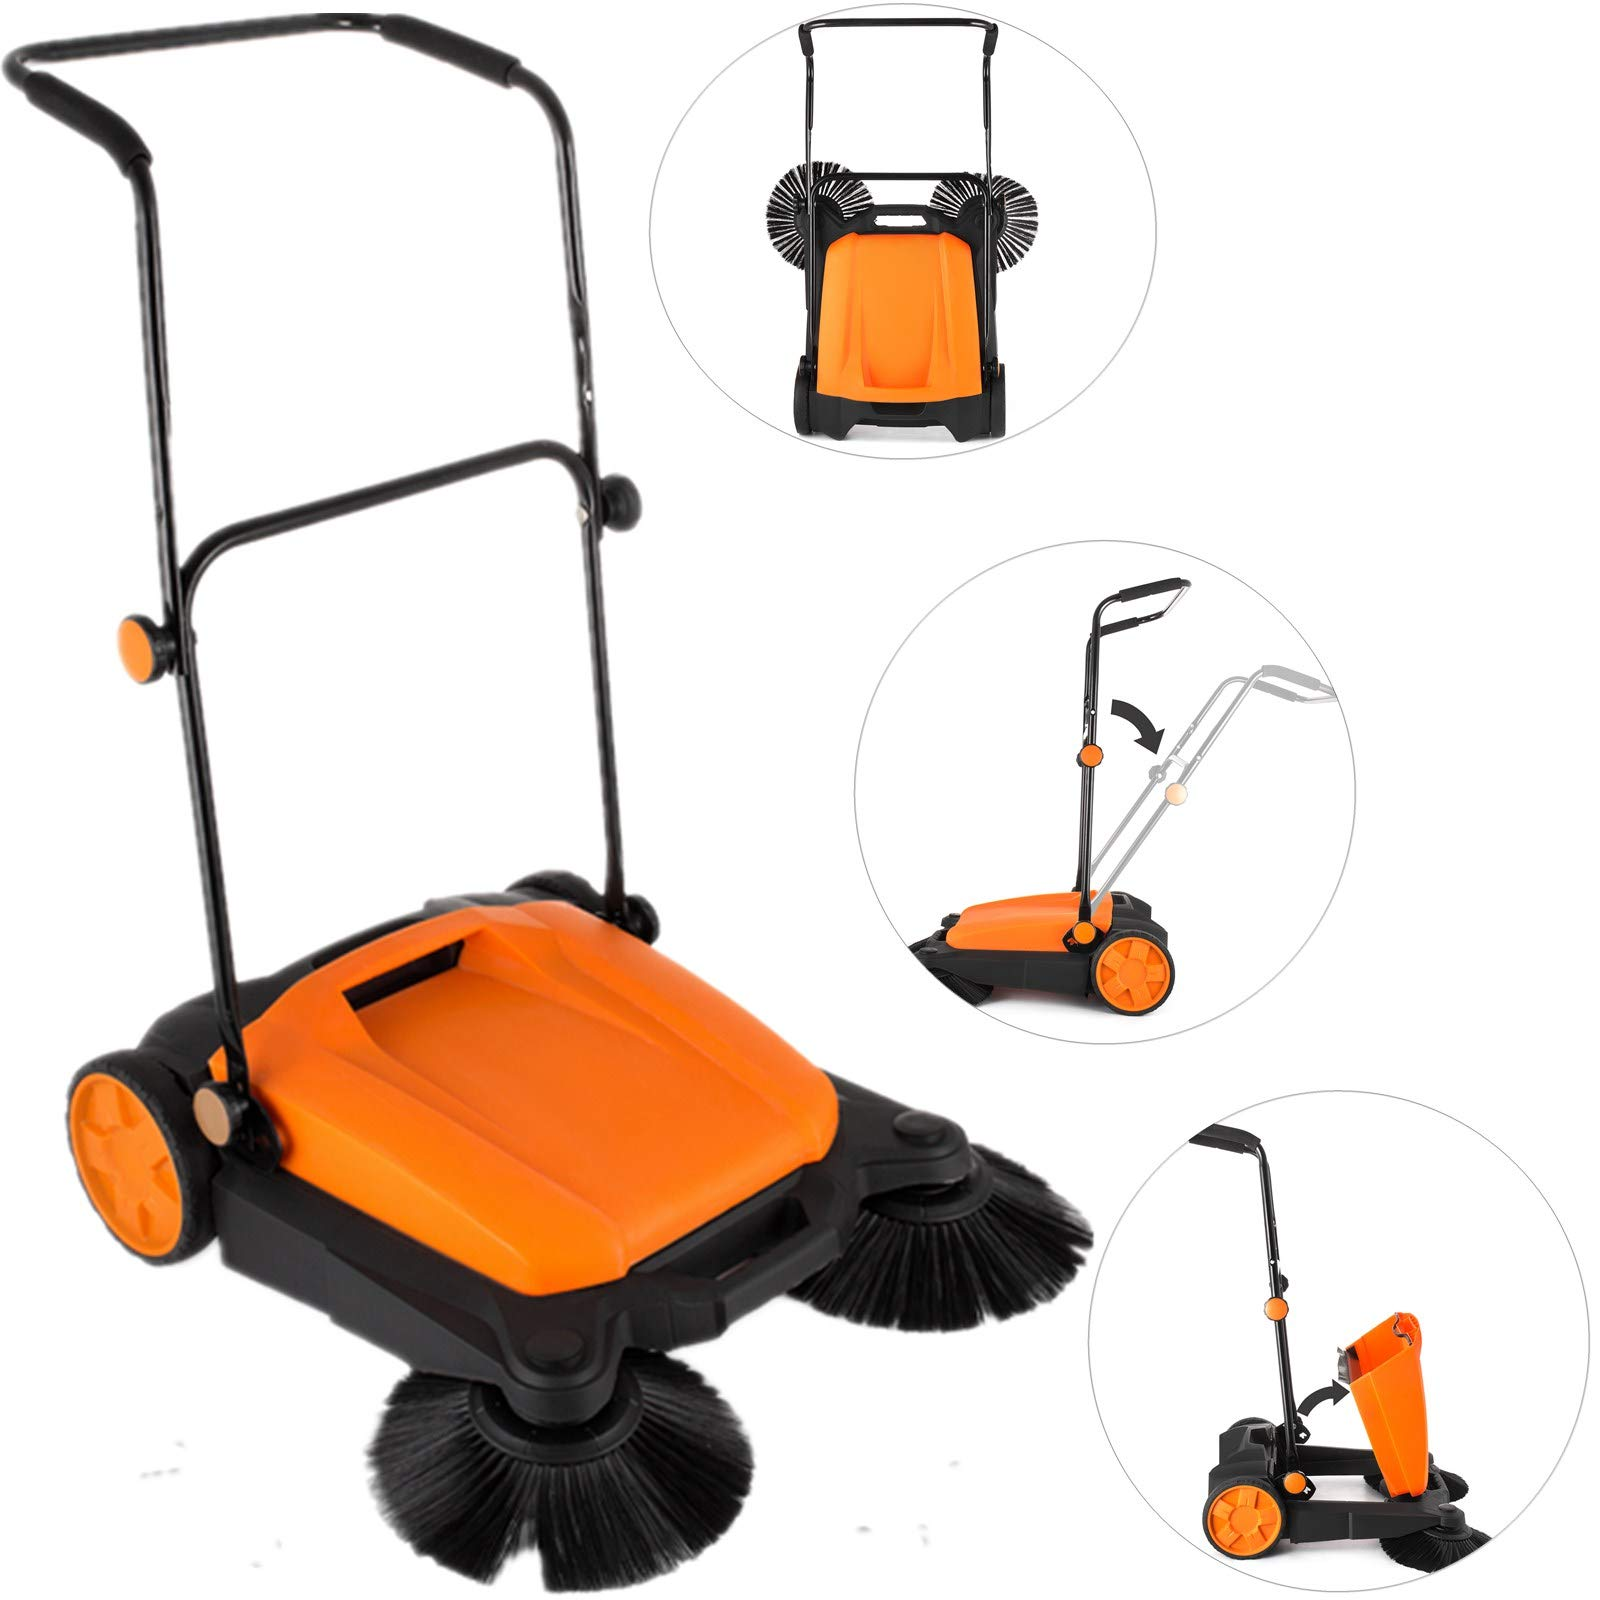 OrangeA Outdoor Push Sweeper RT-650S 23'' Width Outdoor Manual Sweeper with Dual Side Brooms Industrial Push Sweeper for Cleaning Your Outdoor Areas with Ease by OrangeA